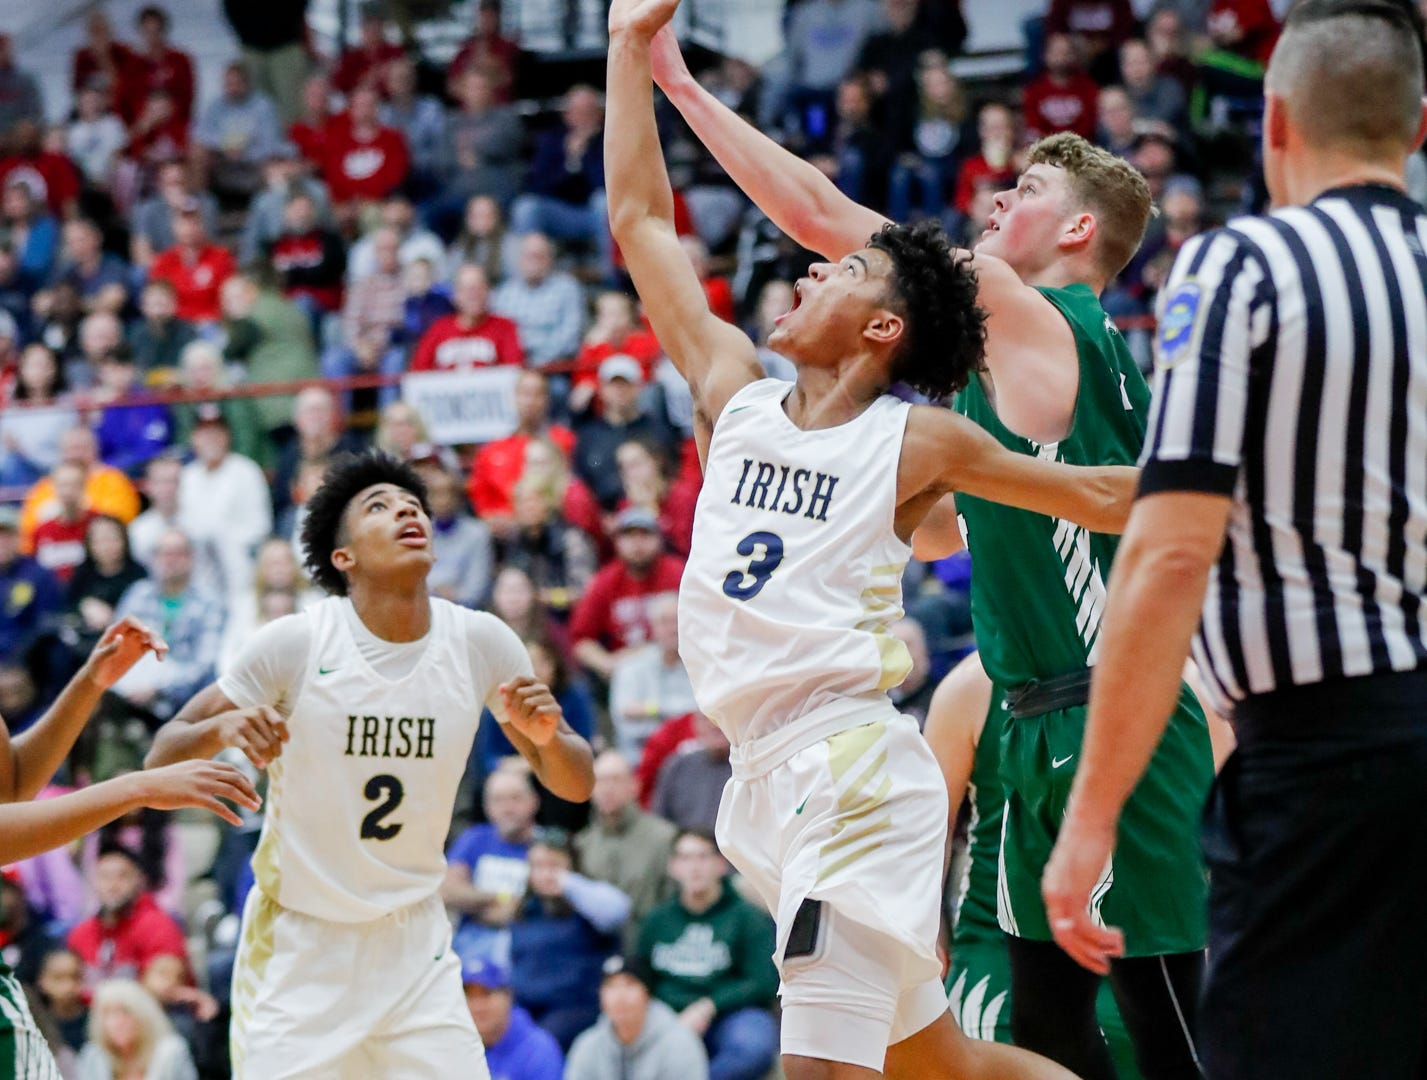 Cathedral high School's Grant Taueg (3), Armaan Franklin (2), and Zionsville Community High School's Gunnar Vannatta (44) reach for a rebound during a Tip Off Classic game between Cathedral High School and Zionsville Community High School, held at the Southport Fieldhouse, on Saturday, Dec. 8, 2018.